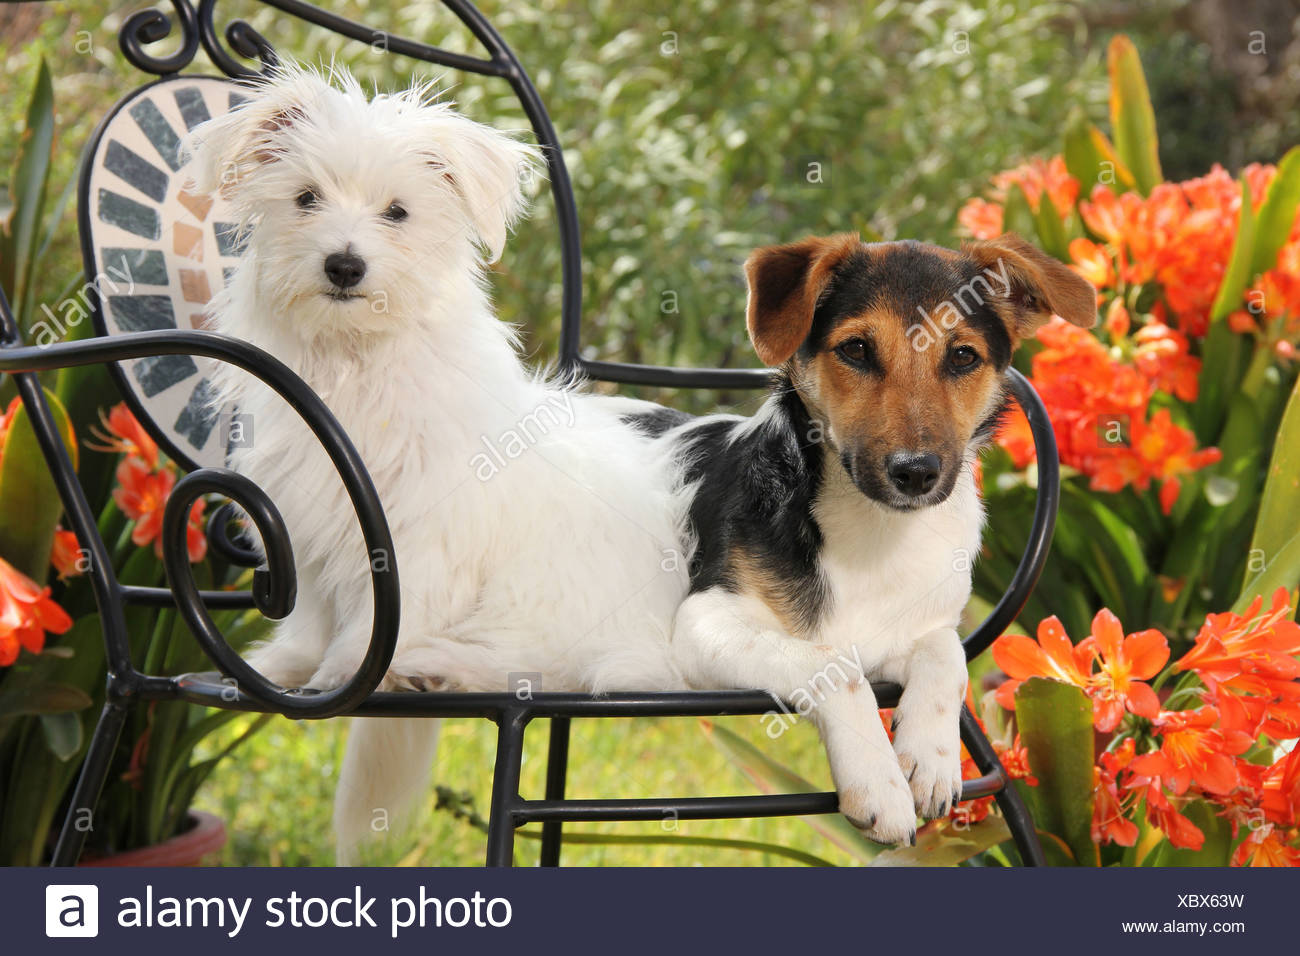 Juvenile Maltese and Jack Russell Terrier on a chair in a flowering garden - Stock Image